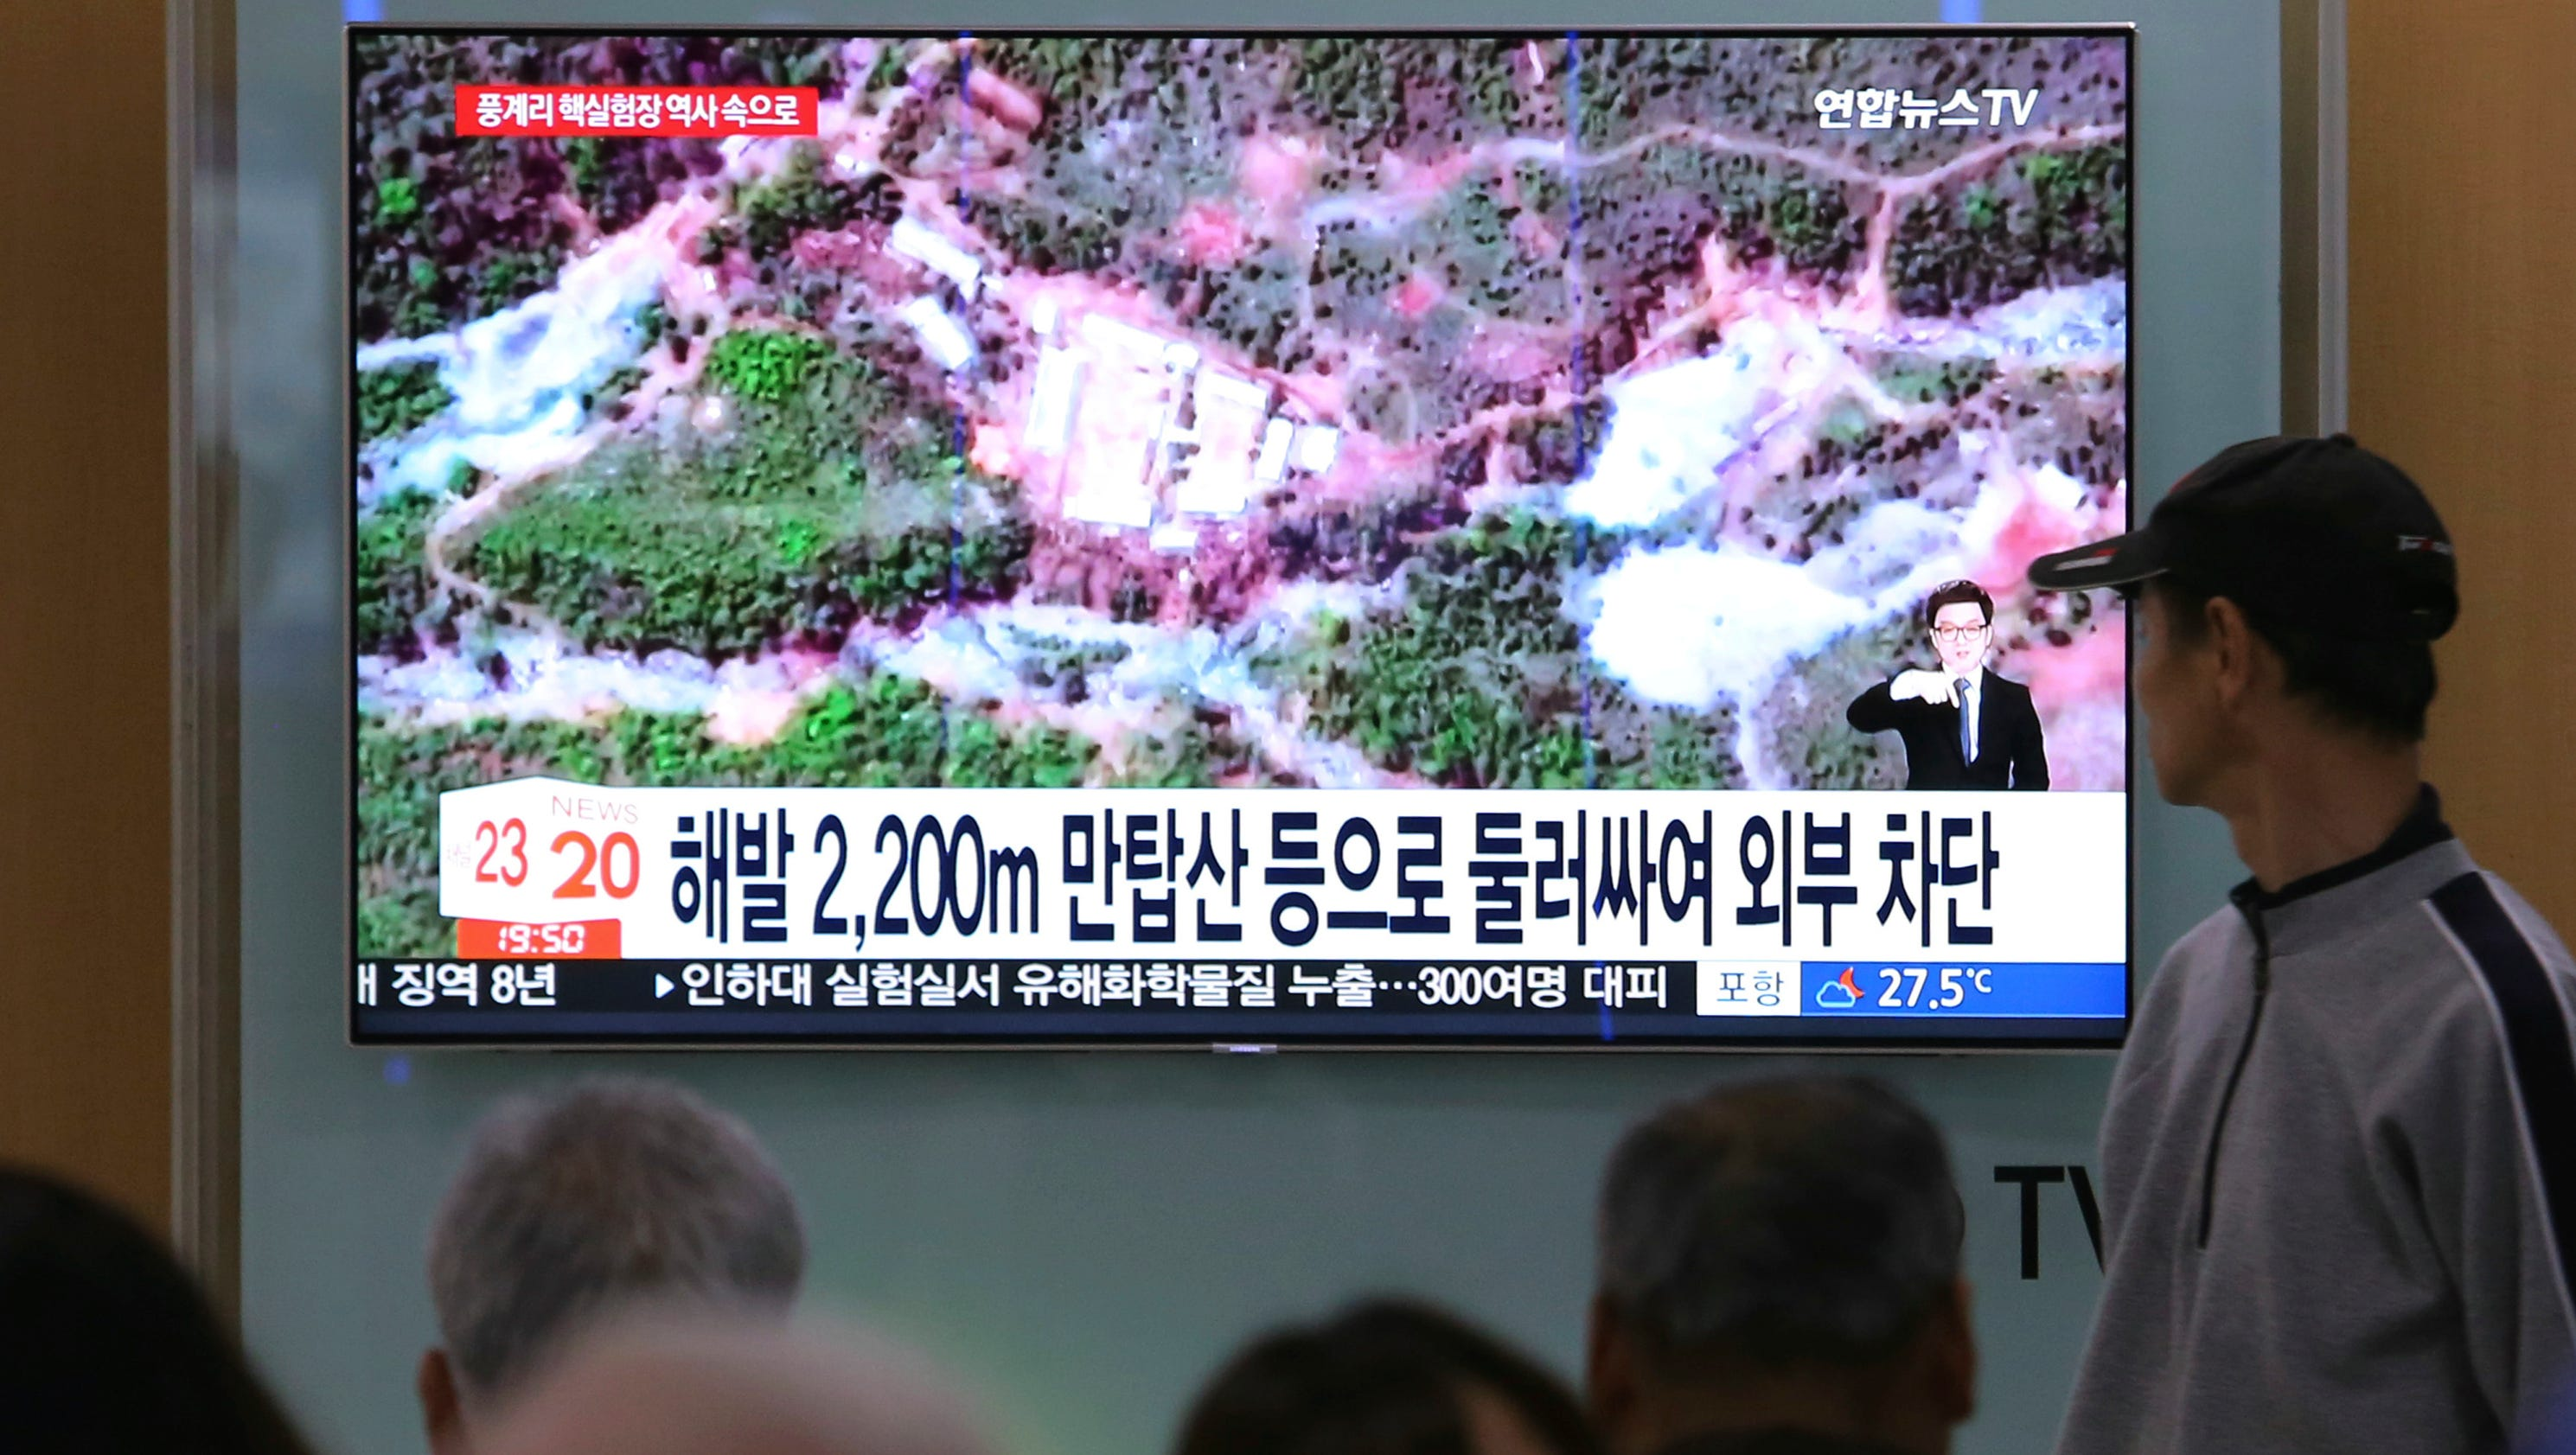 North Korea demolishes nuclear test site, as Trump cancels summit with Kim Jong Un